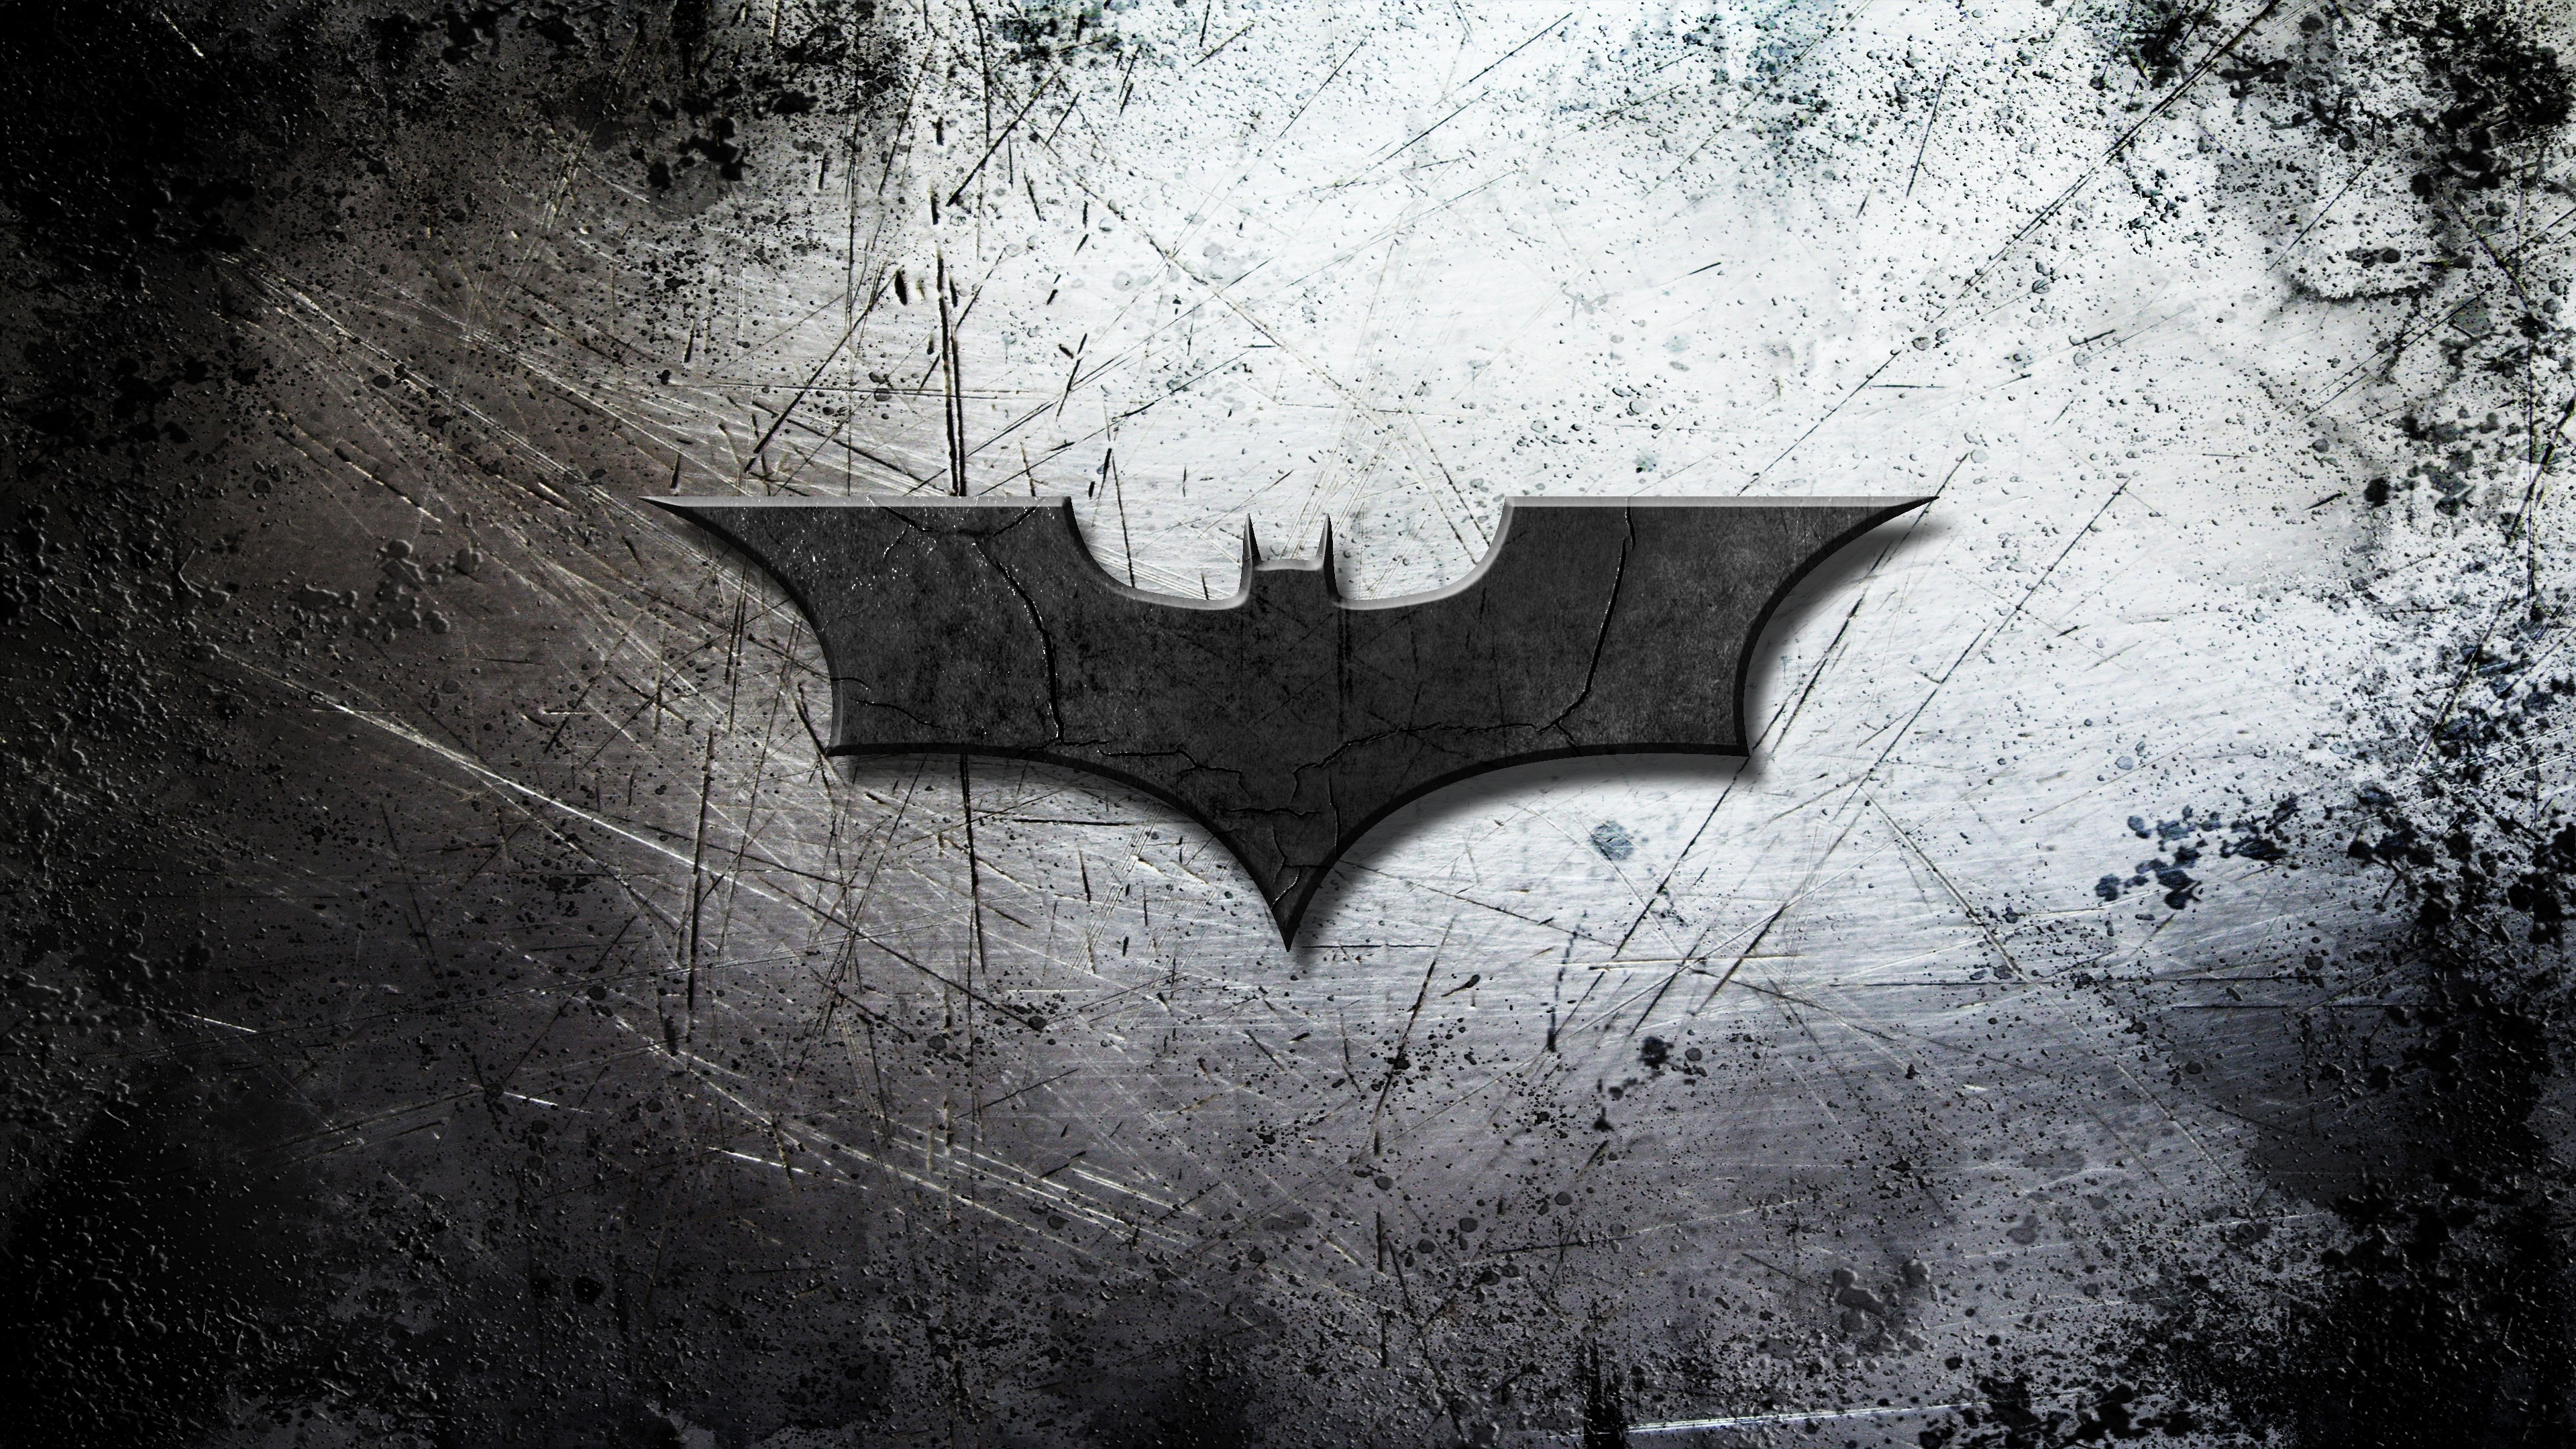 Batman Wallpaper Download Free Amazing Hd Wallpapers Of Batman